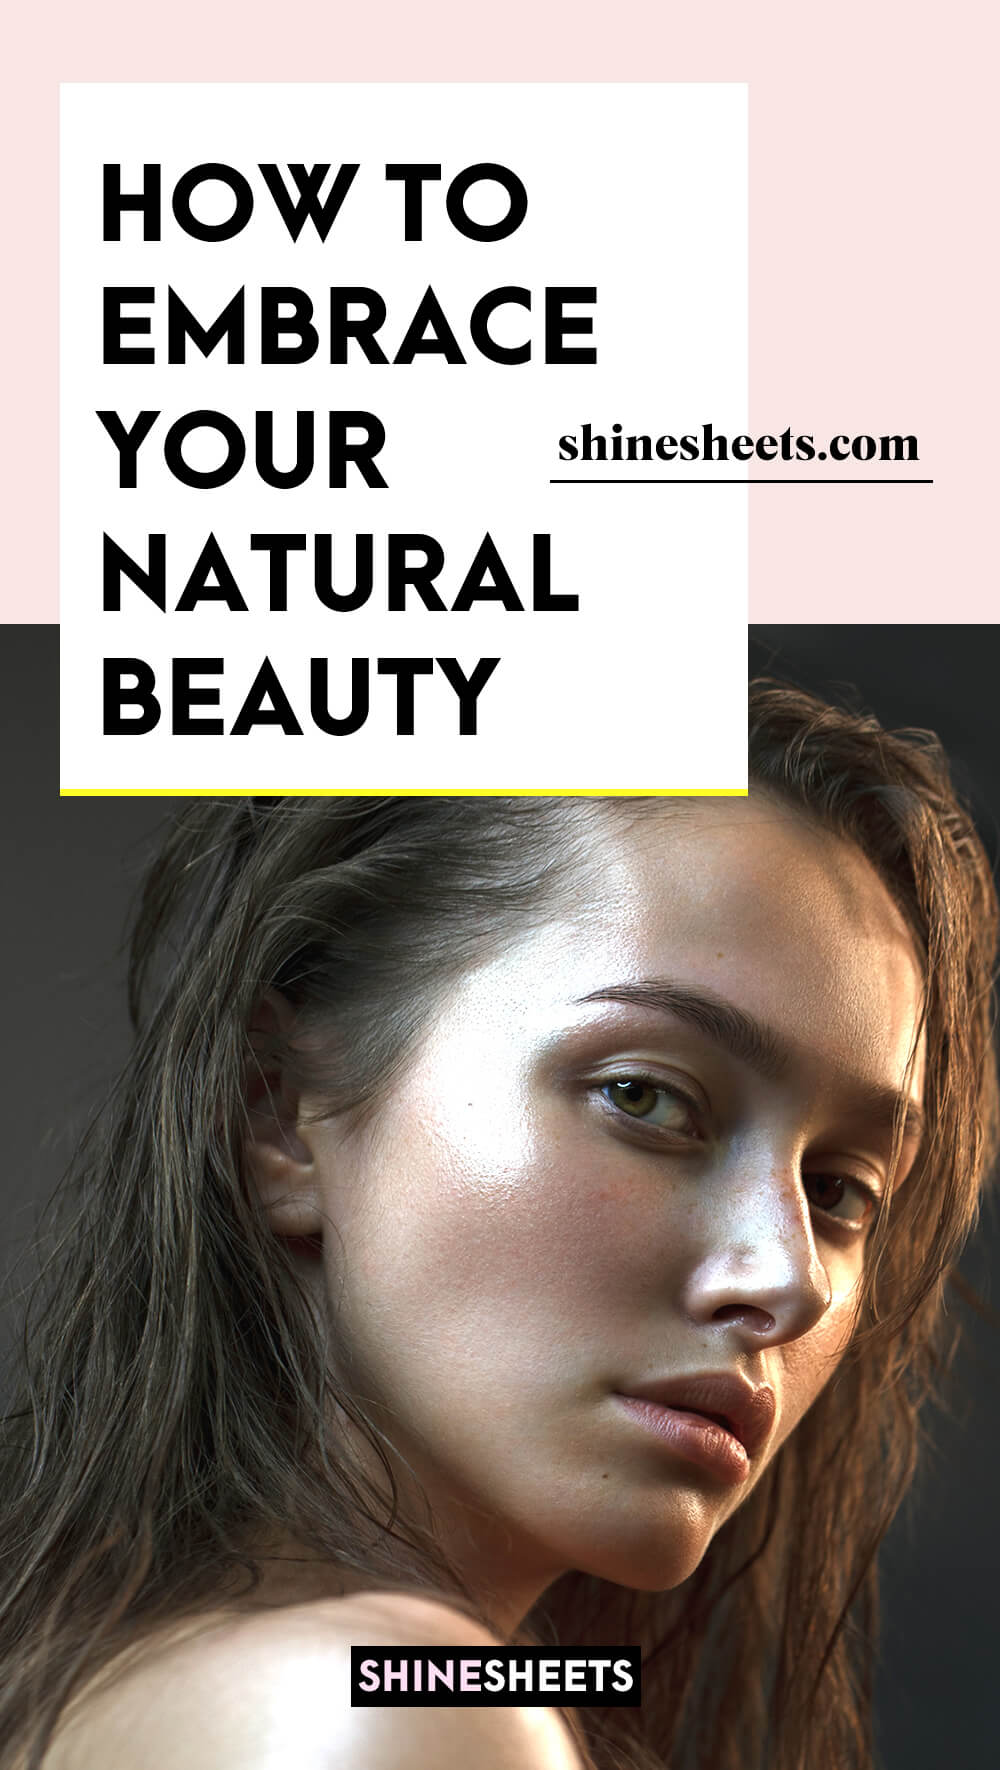 naturally pretty woman embracing her natural beauty